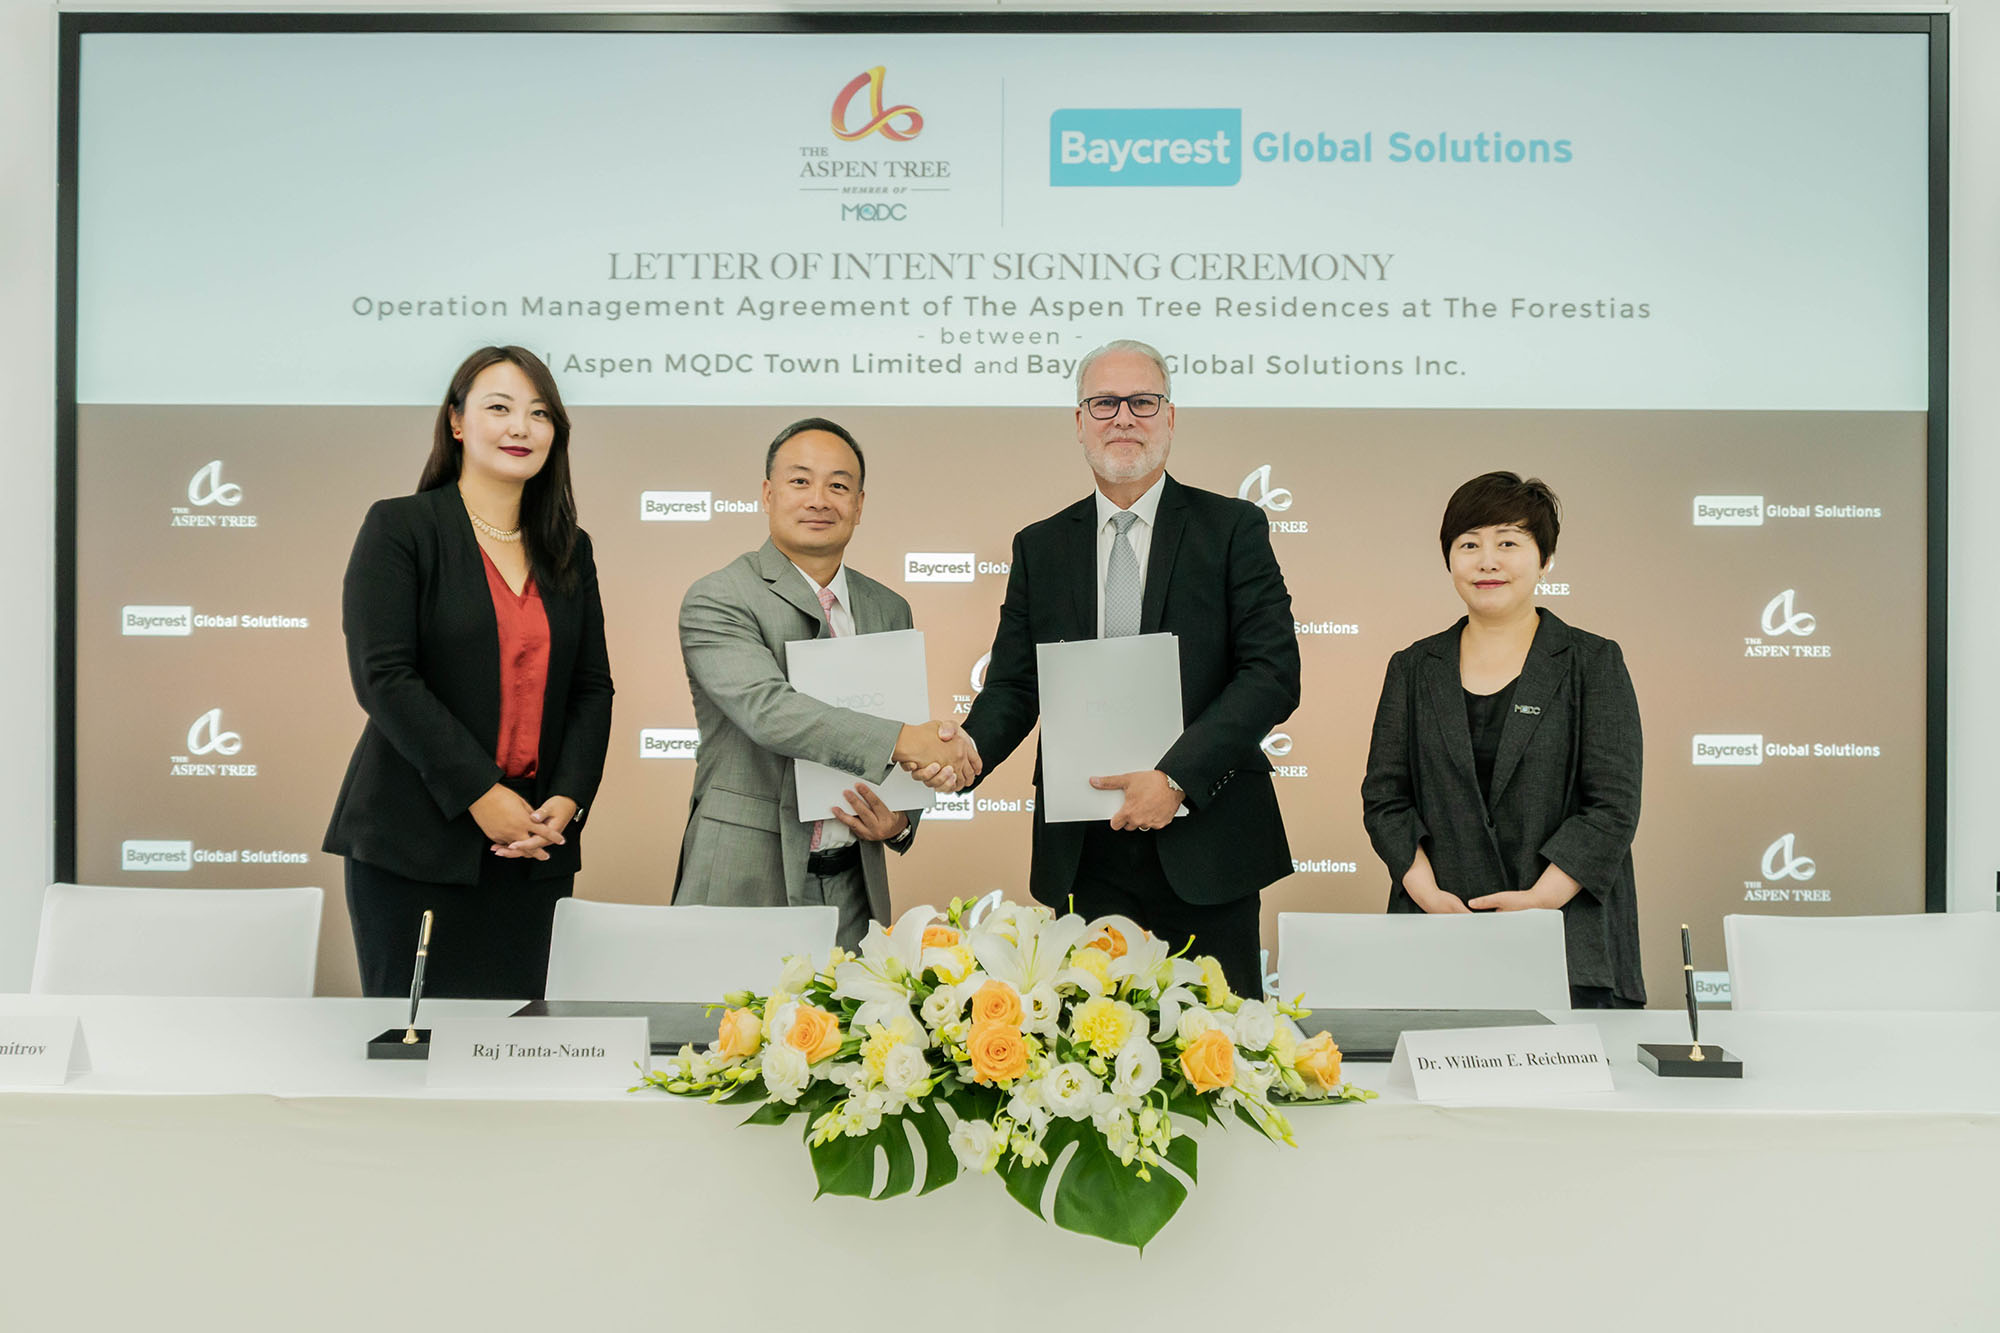 Letter of Intent Signing Ceremony Between The Aspen Tree and Baycrest Global Solutions